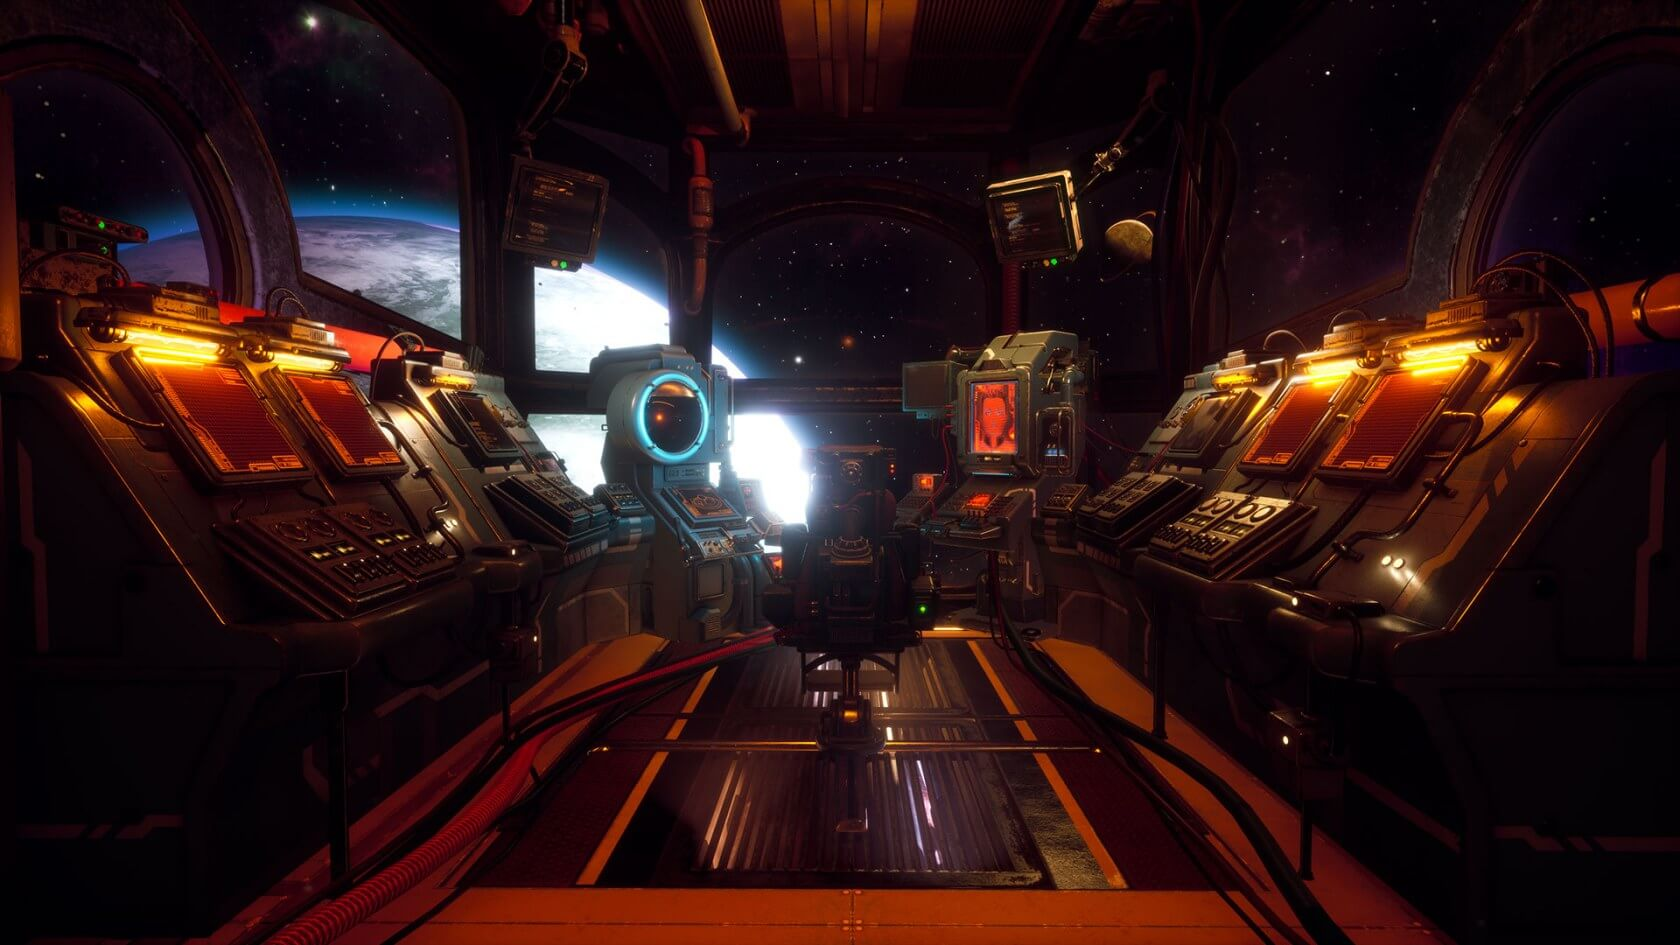 The Outer Worlds won't launch on Steam, will be an Epic